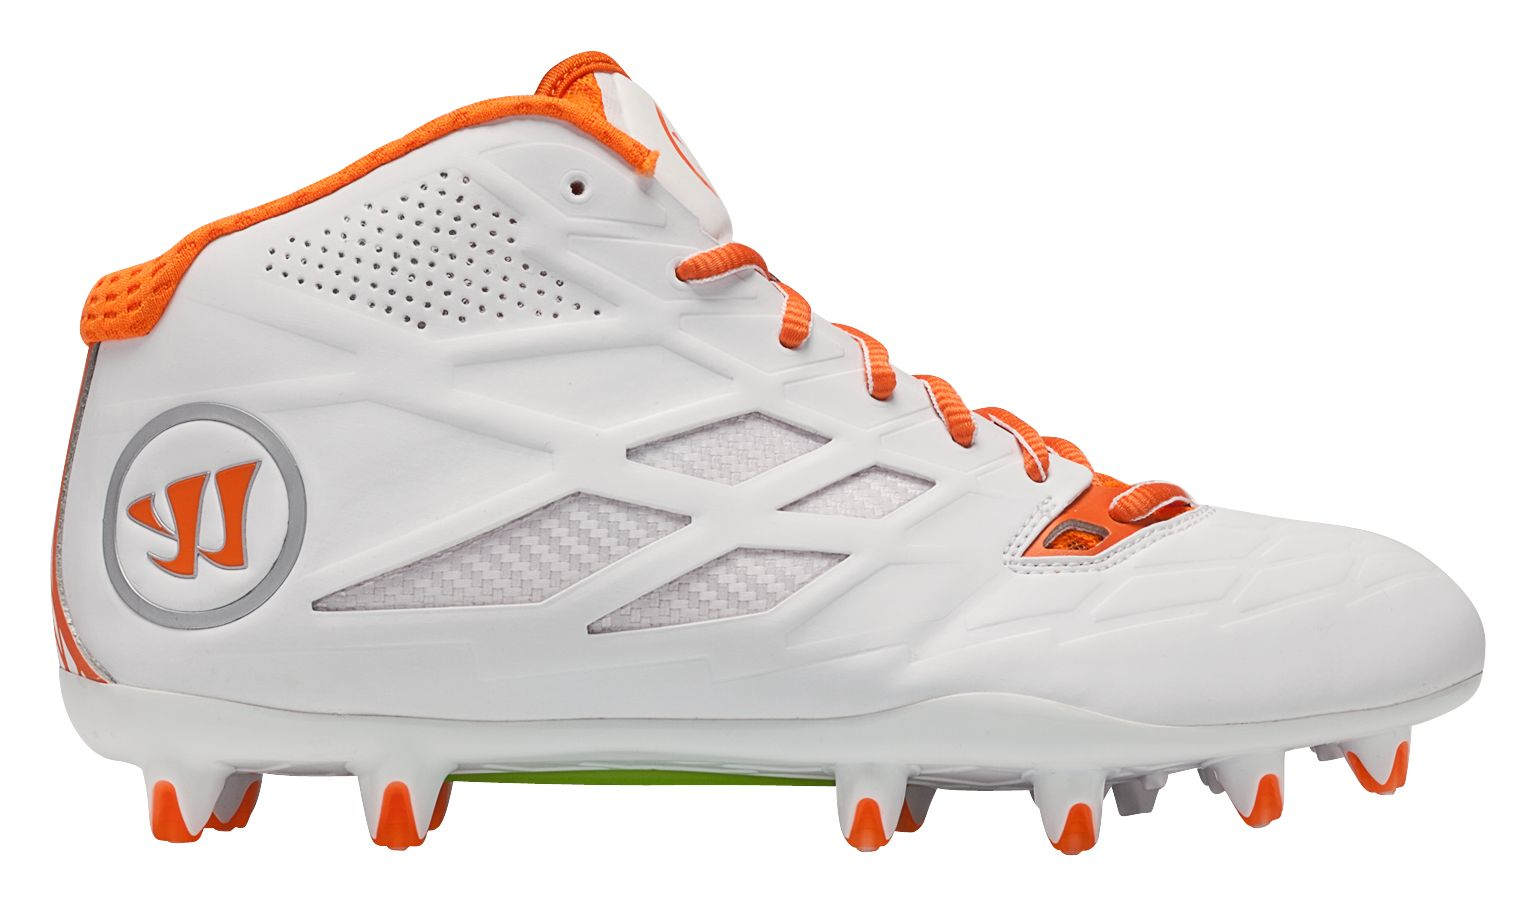 34e4adfcde92 Warrior - Burn 8.0 Mid Cleat - Men's - , - Warrior - US